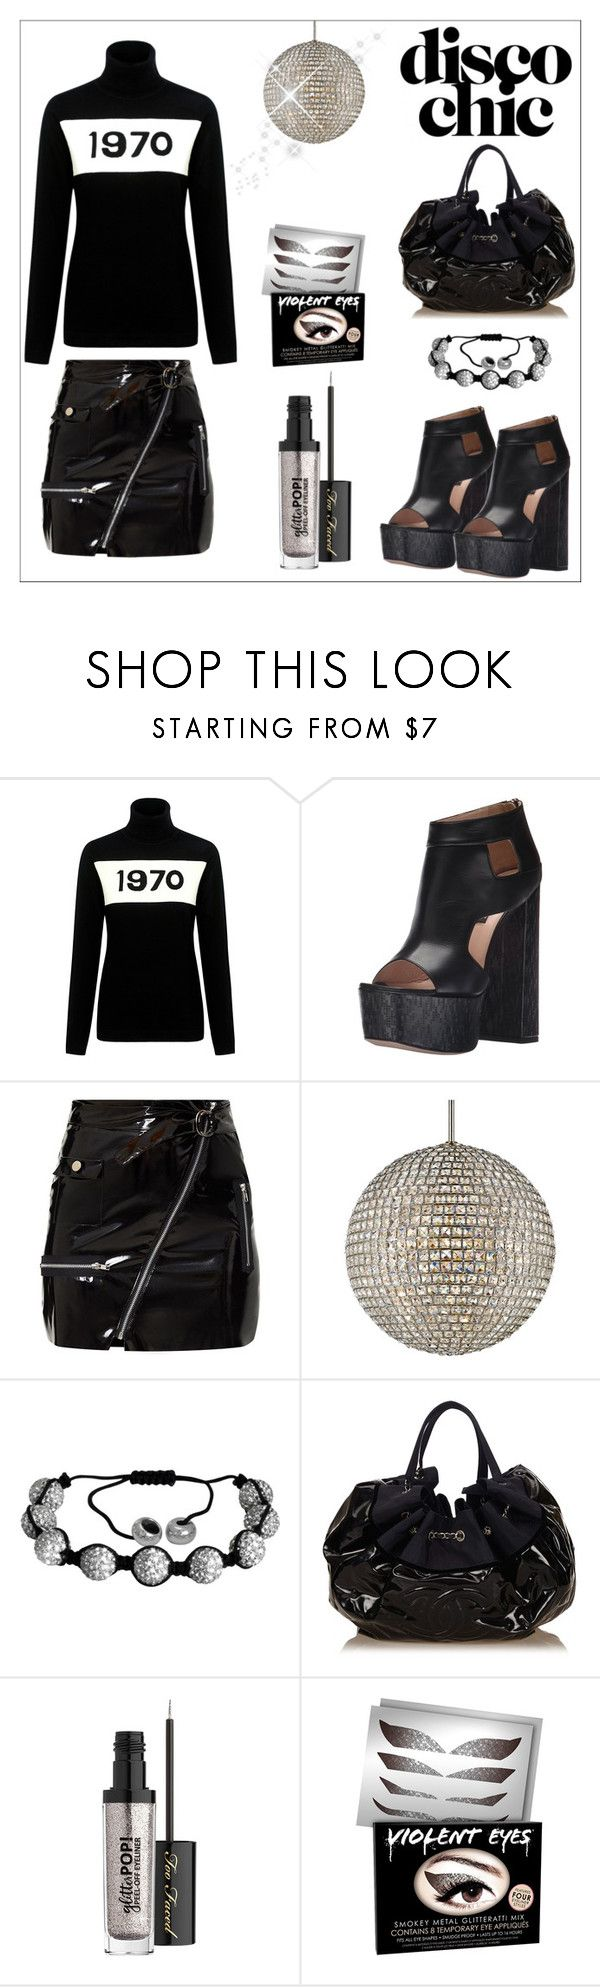 """Yes, this is an oxymoron."" by onenakedewe ❤ liked on Polyvore featuring Bella Freud, Ruthie Davis, Crystorama, Oxford Ivy, Chanel, Too Faced Cosmetics and Violent Lips"